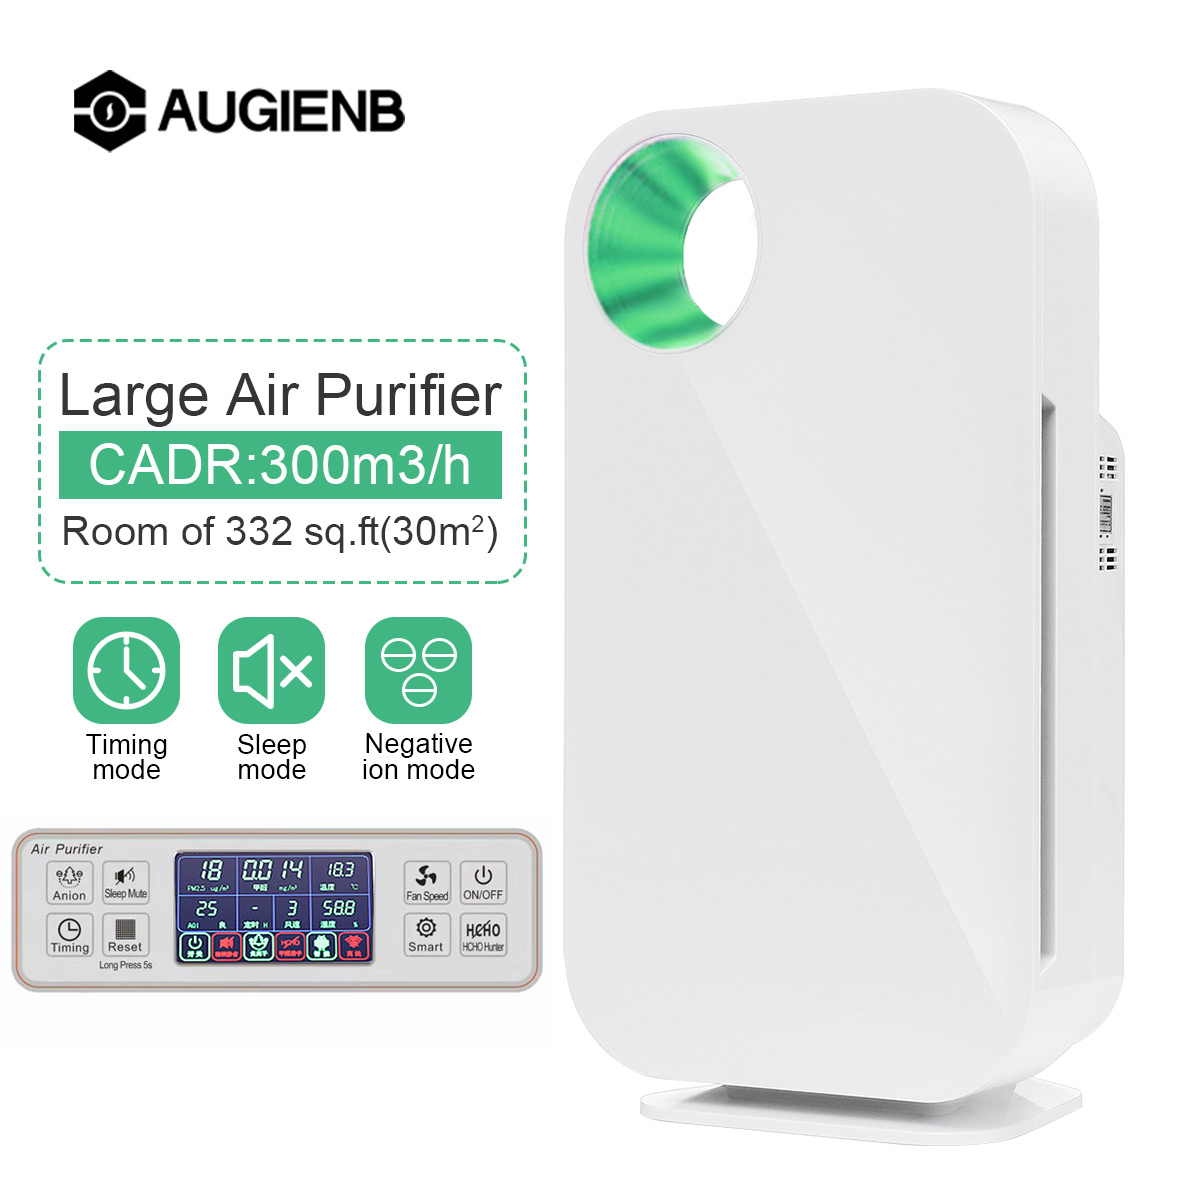 AUGIENB HEPA Filter Home Air Purifier 5 Stage Odor Allergies Eliminator for PM2.5 Smoke Dust